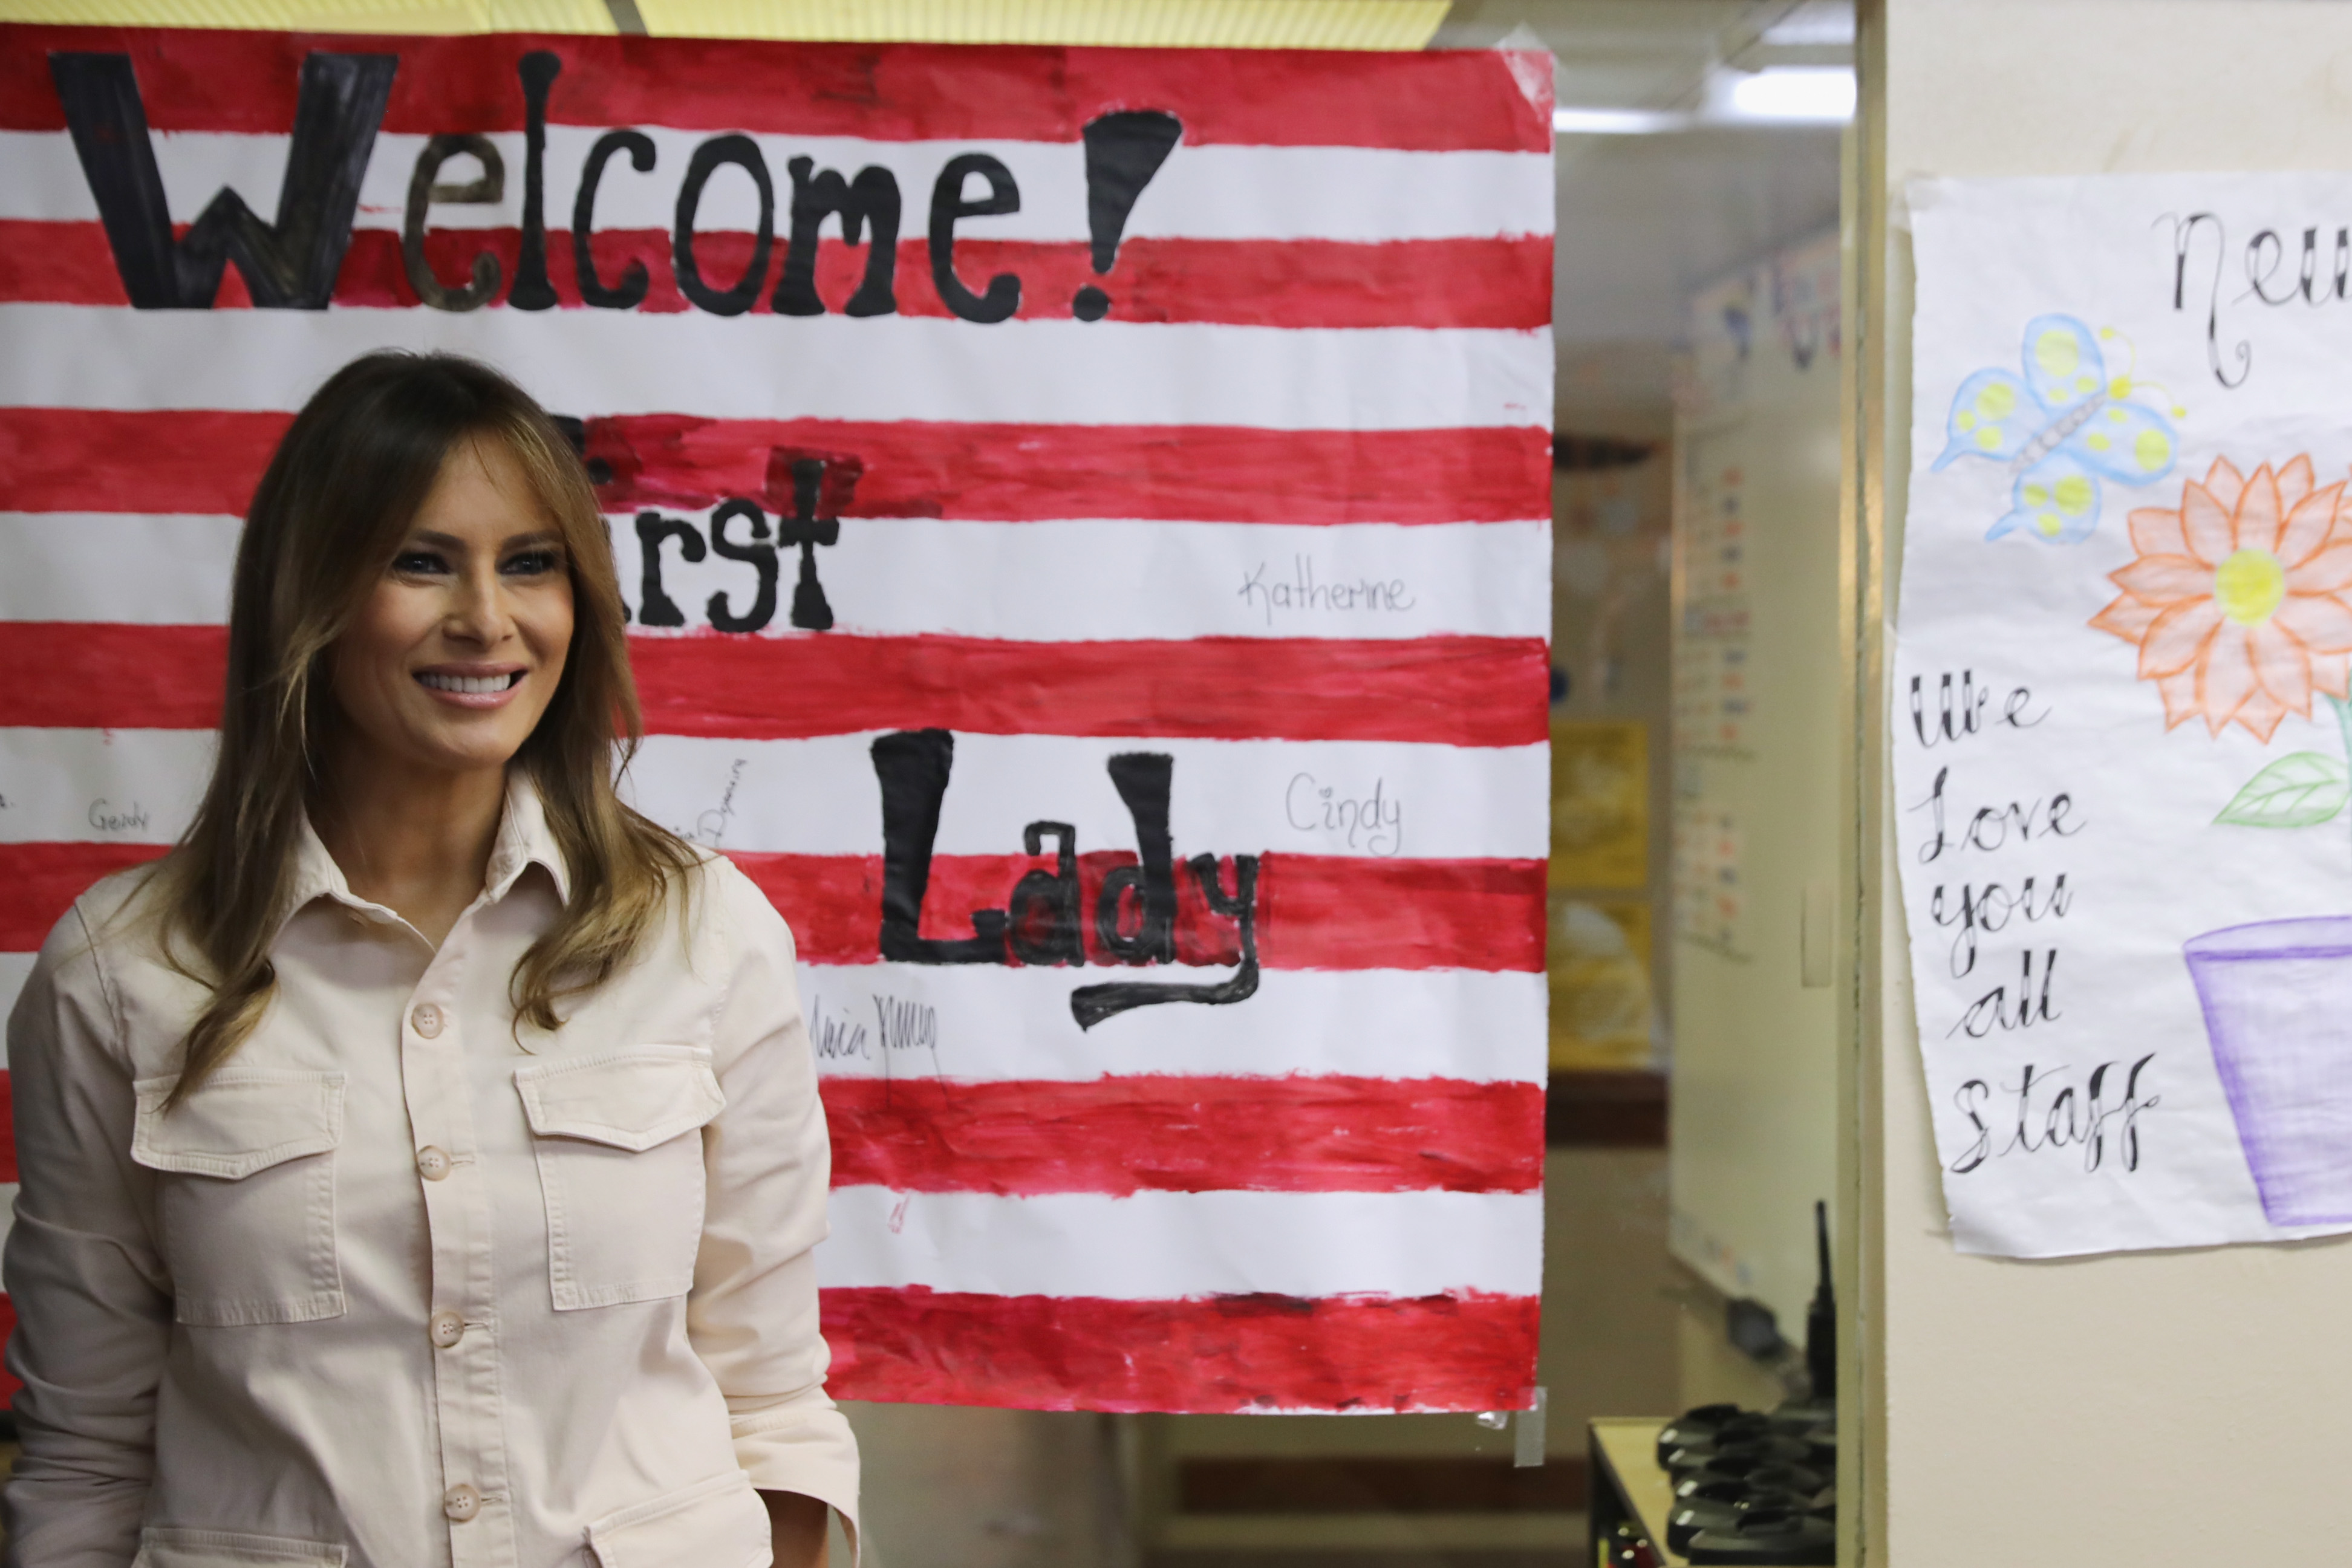 U.S. First Lady Melania Trump smiles after signing a welcome poster made for her after a round table discussion with doctors and social workers at the Upbring New Hope Childrens Center operated by Lutheran Social Services of the South and contracted with the Department of Health and Human Services June 21, 2018 in McAllen, Texas. The first lady traveled to Texas to see first hand the condition and treatment that migrant children taken from their families at the U.S.-Mexico border are receiving from the federal government. Following public outcry and criticism from members of his own party, President Donald Trump signed an executive order Wednesday to stop the separation of migrant children from their families, a practice the administration employed to deter illegal immigration at the border.